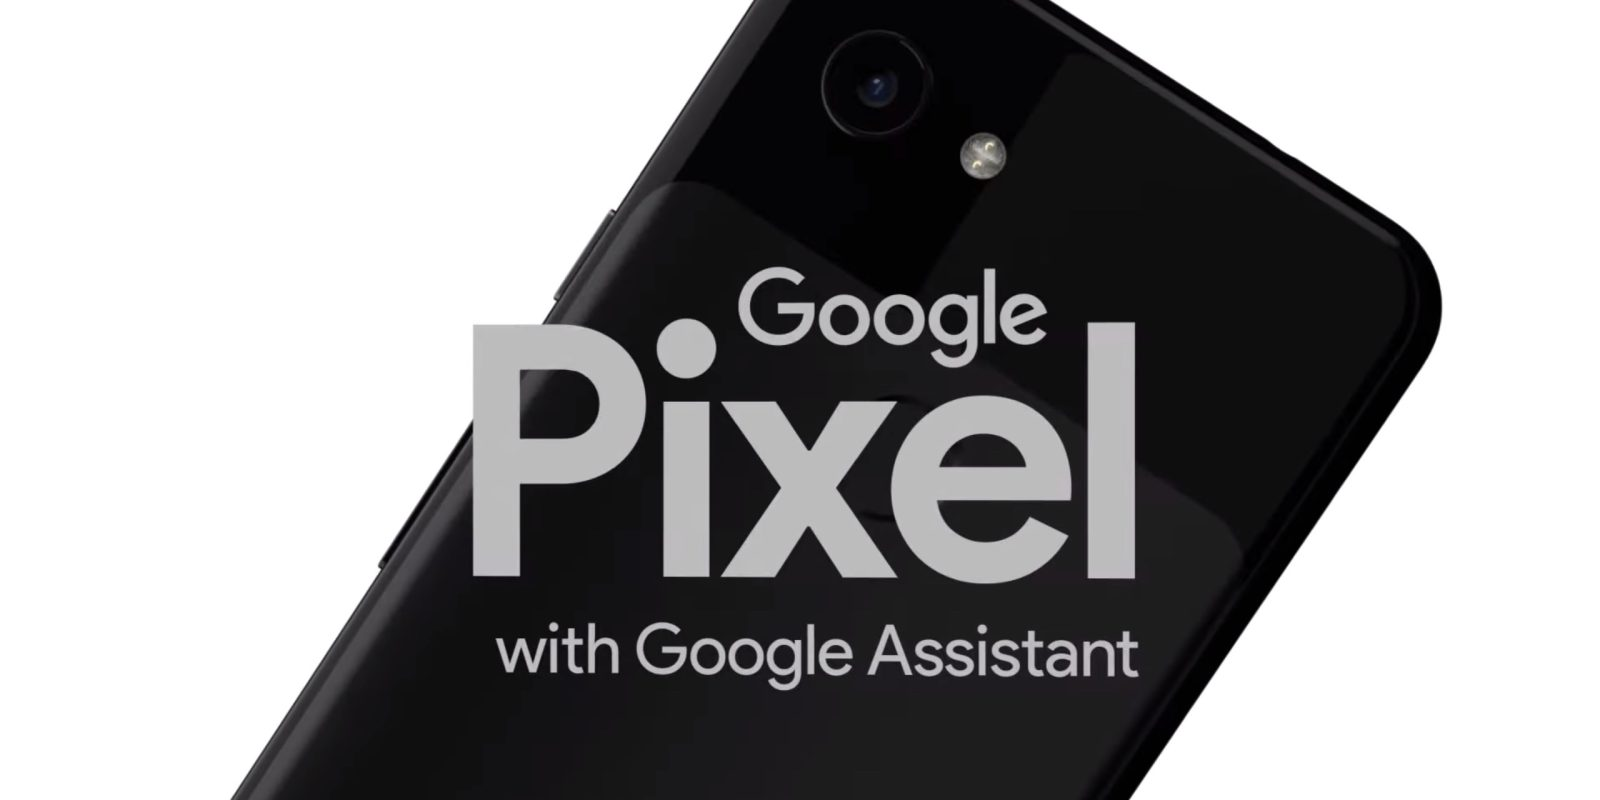 Made by Google kicks off 'Switch to Pixel' ad campaign [Video]